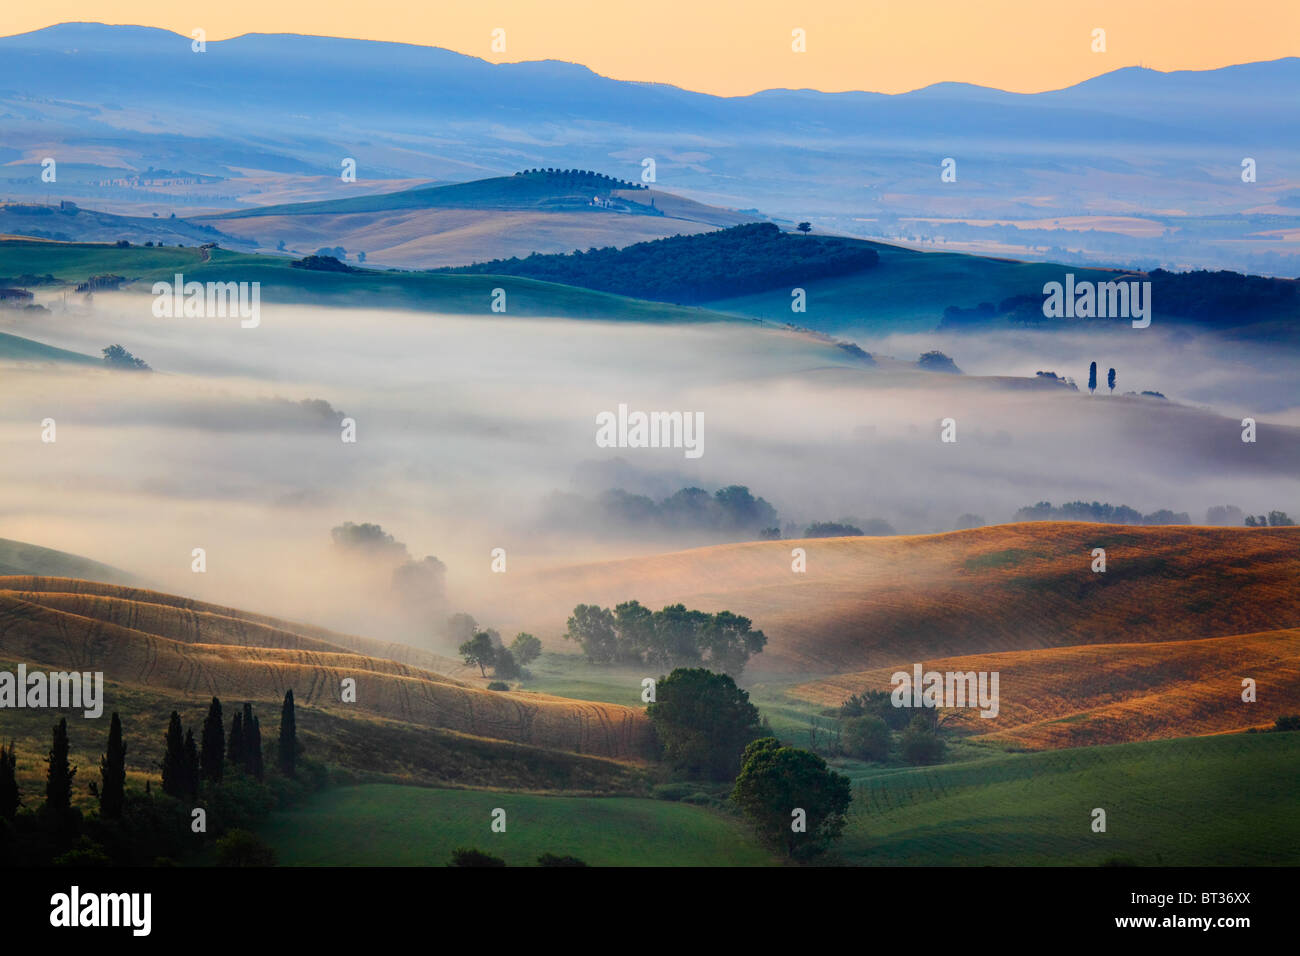 Val d'Orcia in Italy's Tuscany province - Stock Image